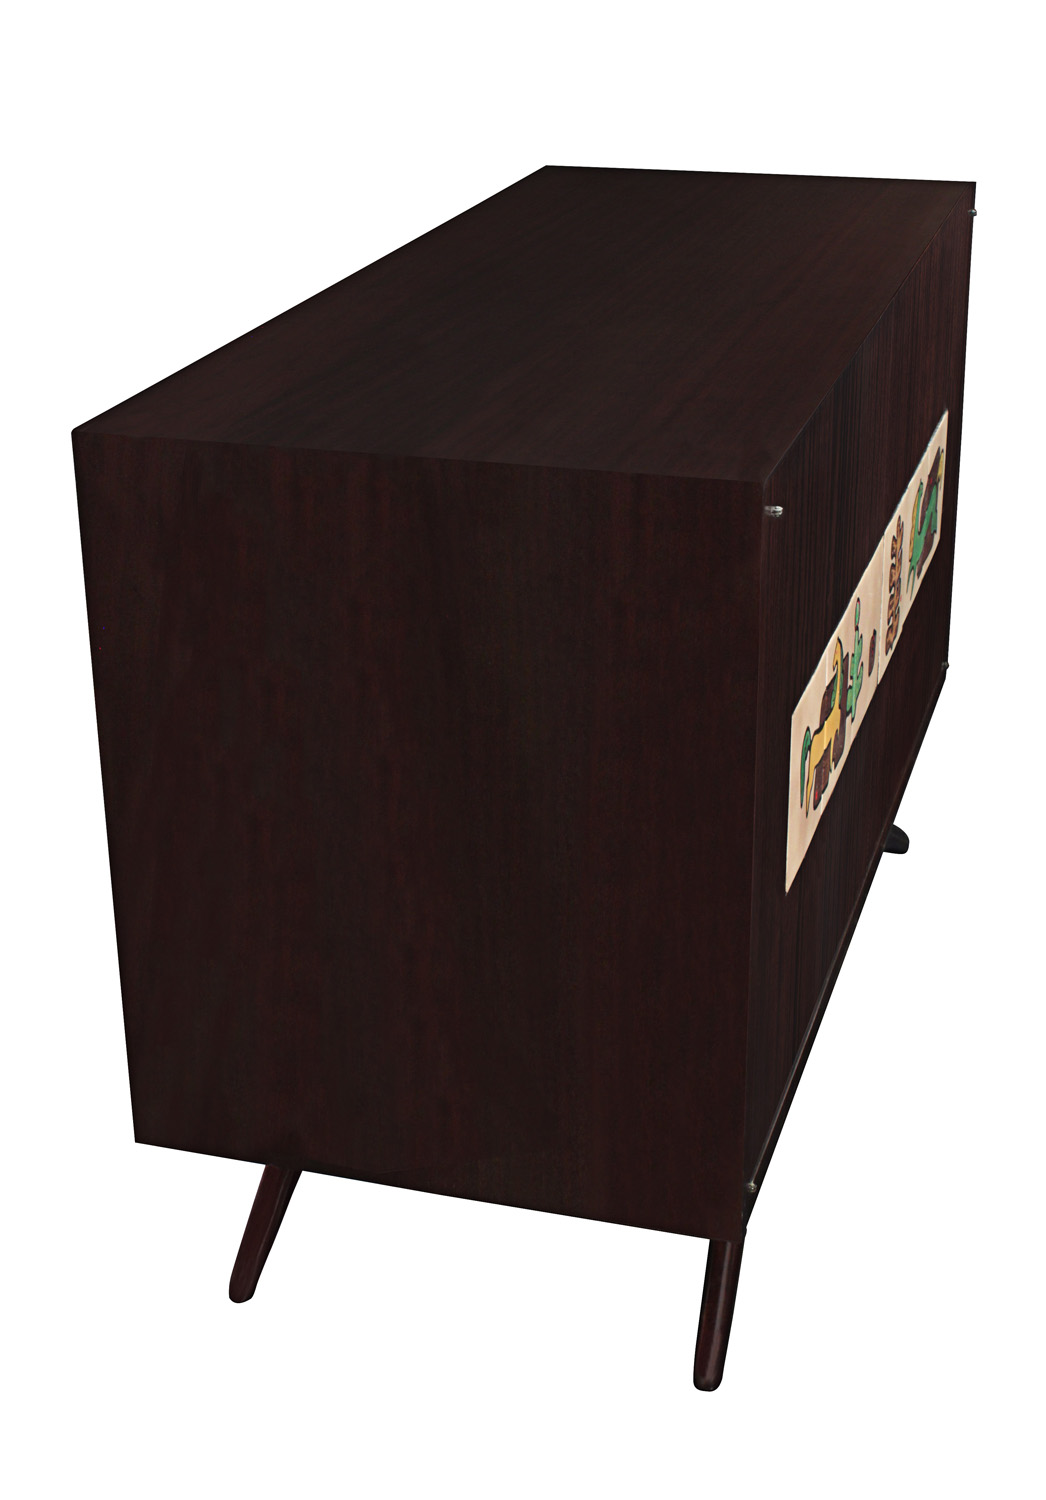 Kagan 350 splayed legs 2dr tiles liquorcabinet4 detail2 hires.jpg